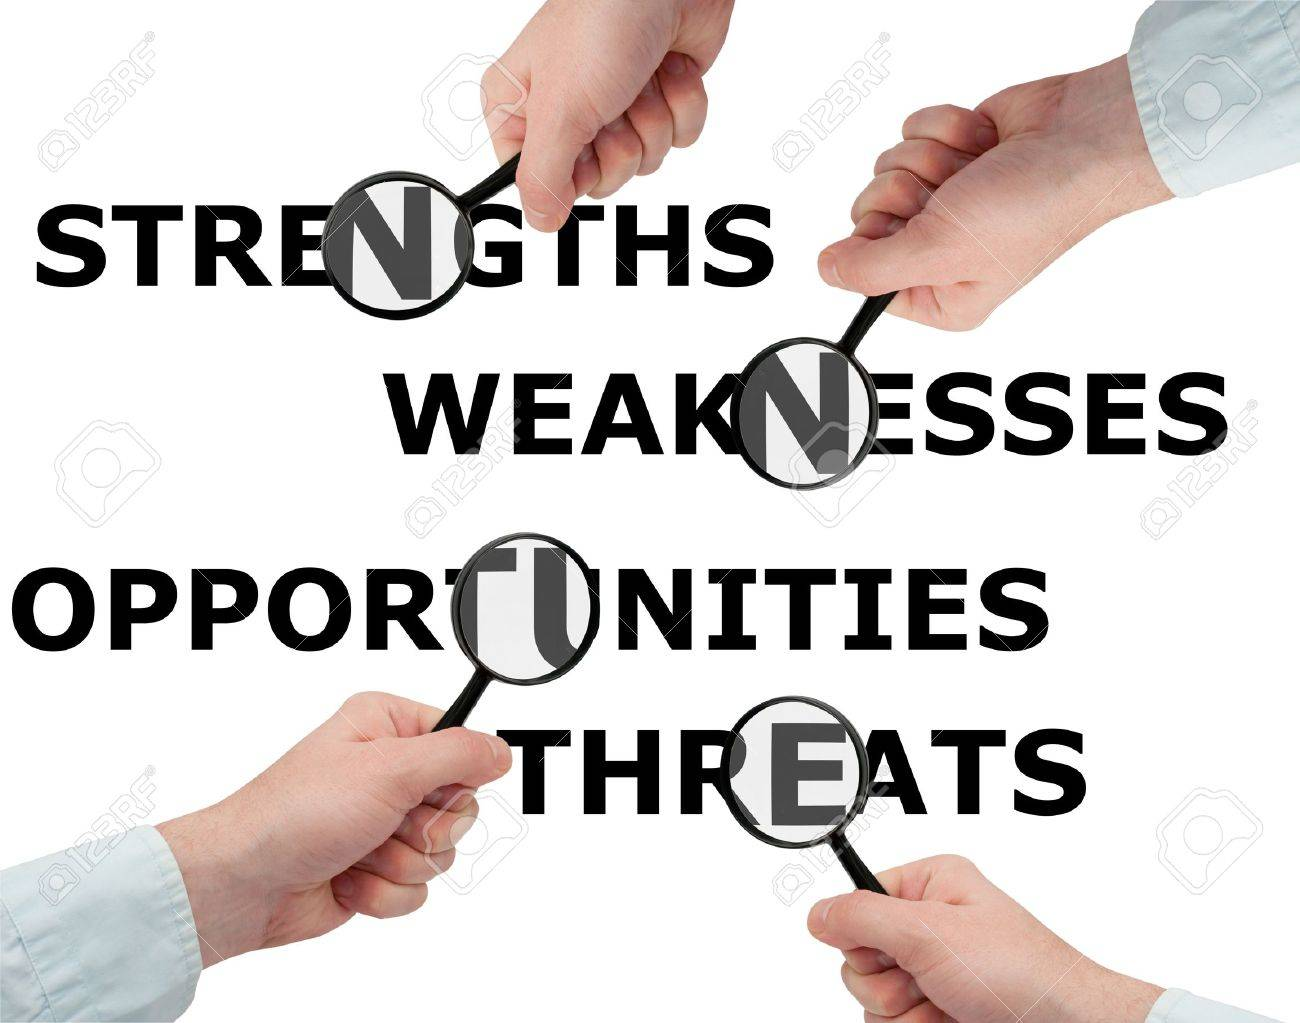 swot analysis man stock photo picture and royalty image swot analysis man stock photo 10312564